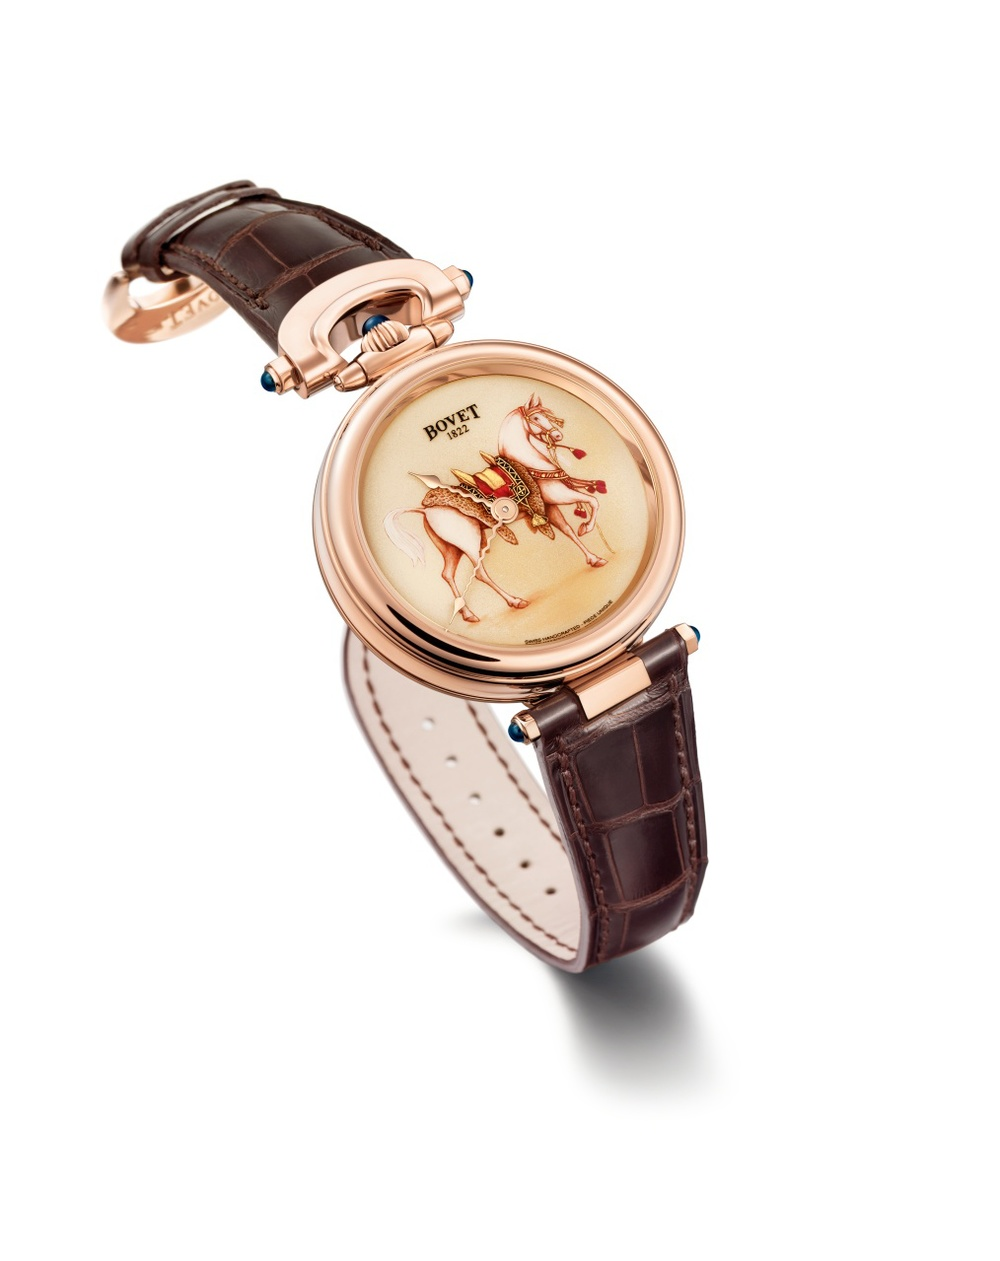 Bovet Watch Amadeo Fleurier Ref. Nr. AF43-3 Call 312-944-3100 | For Availability